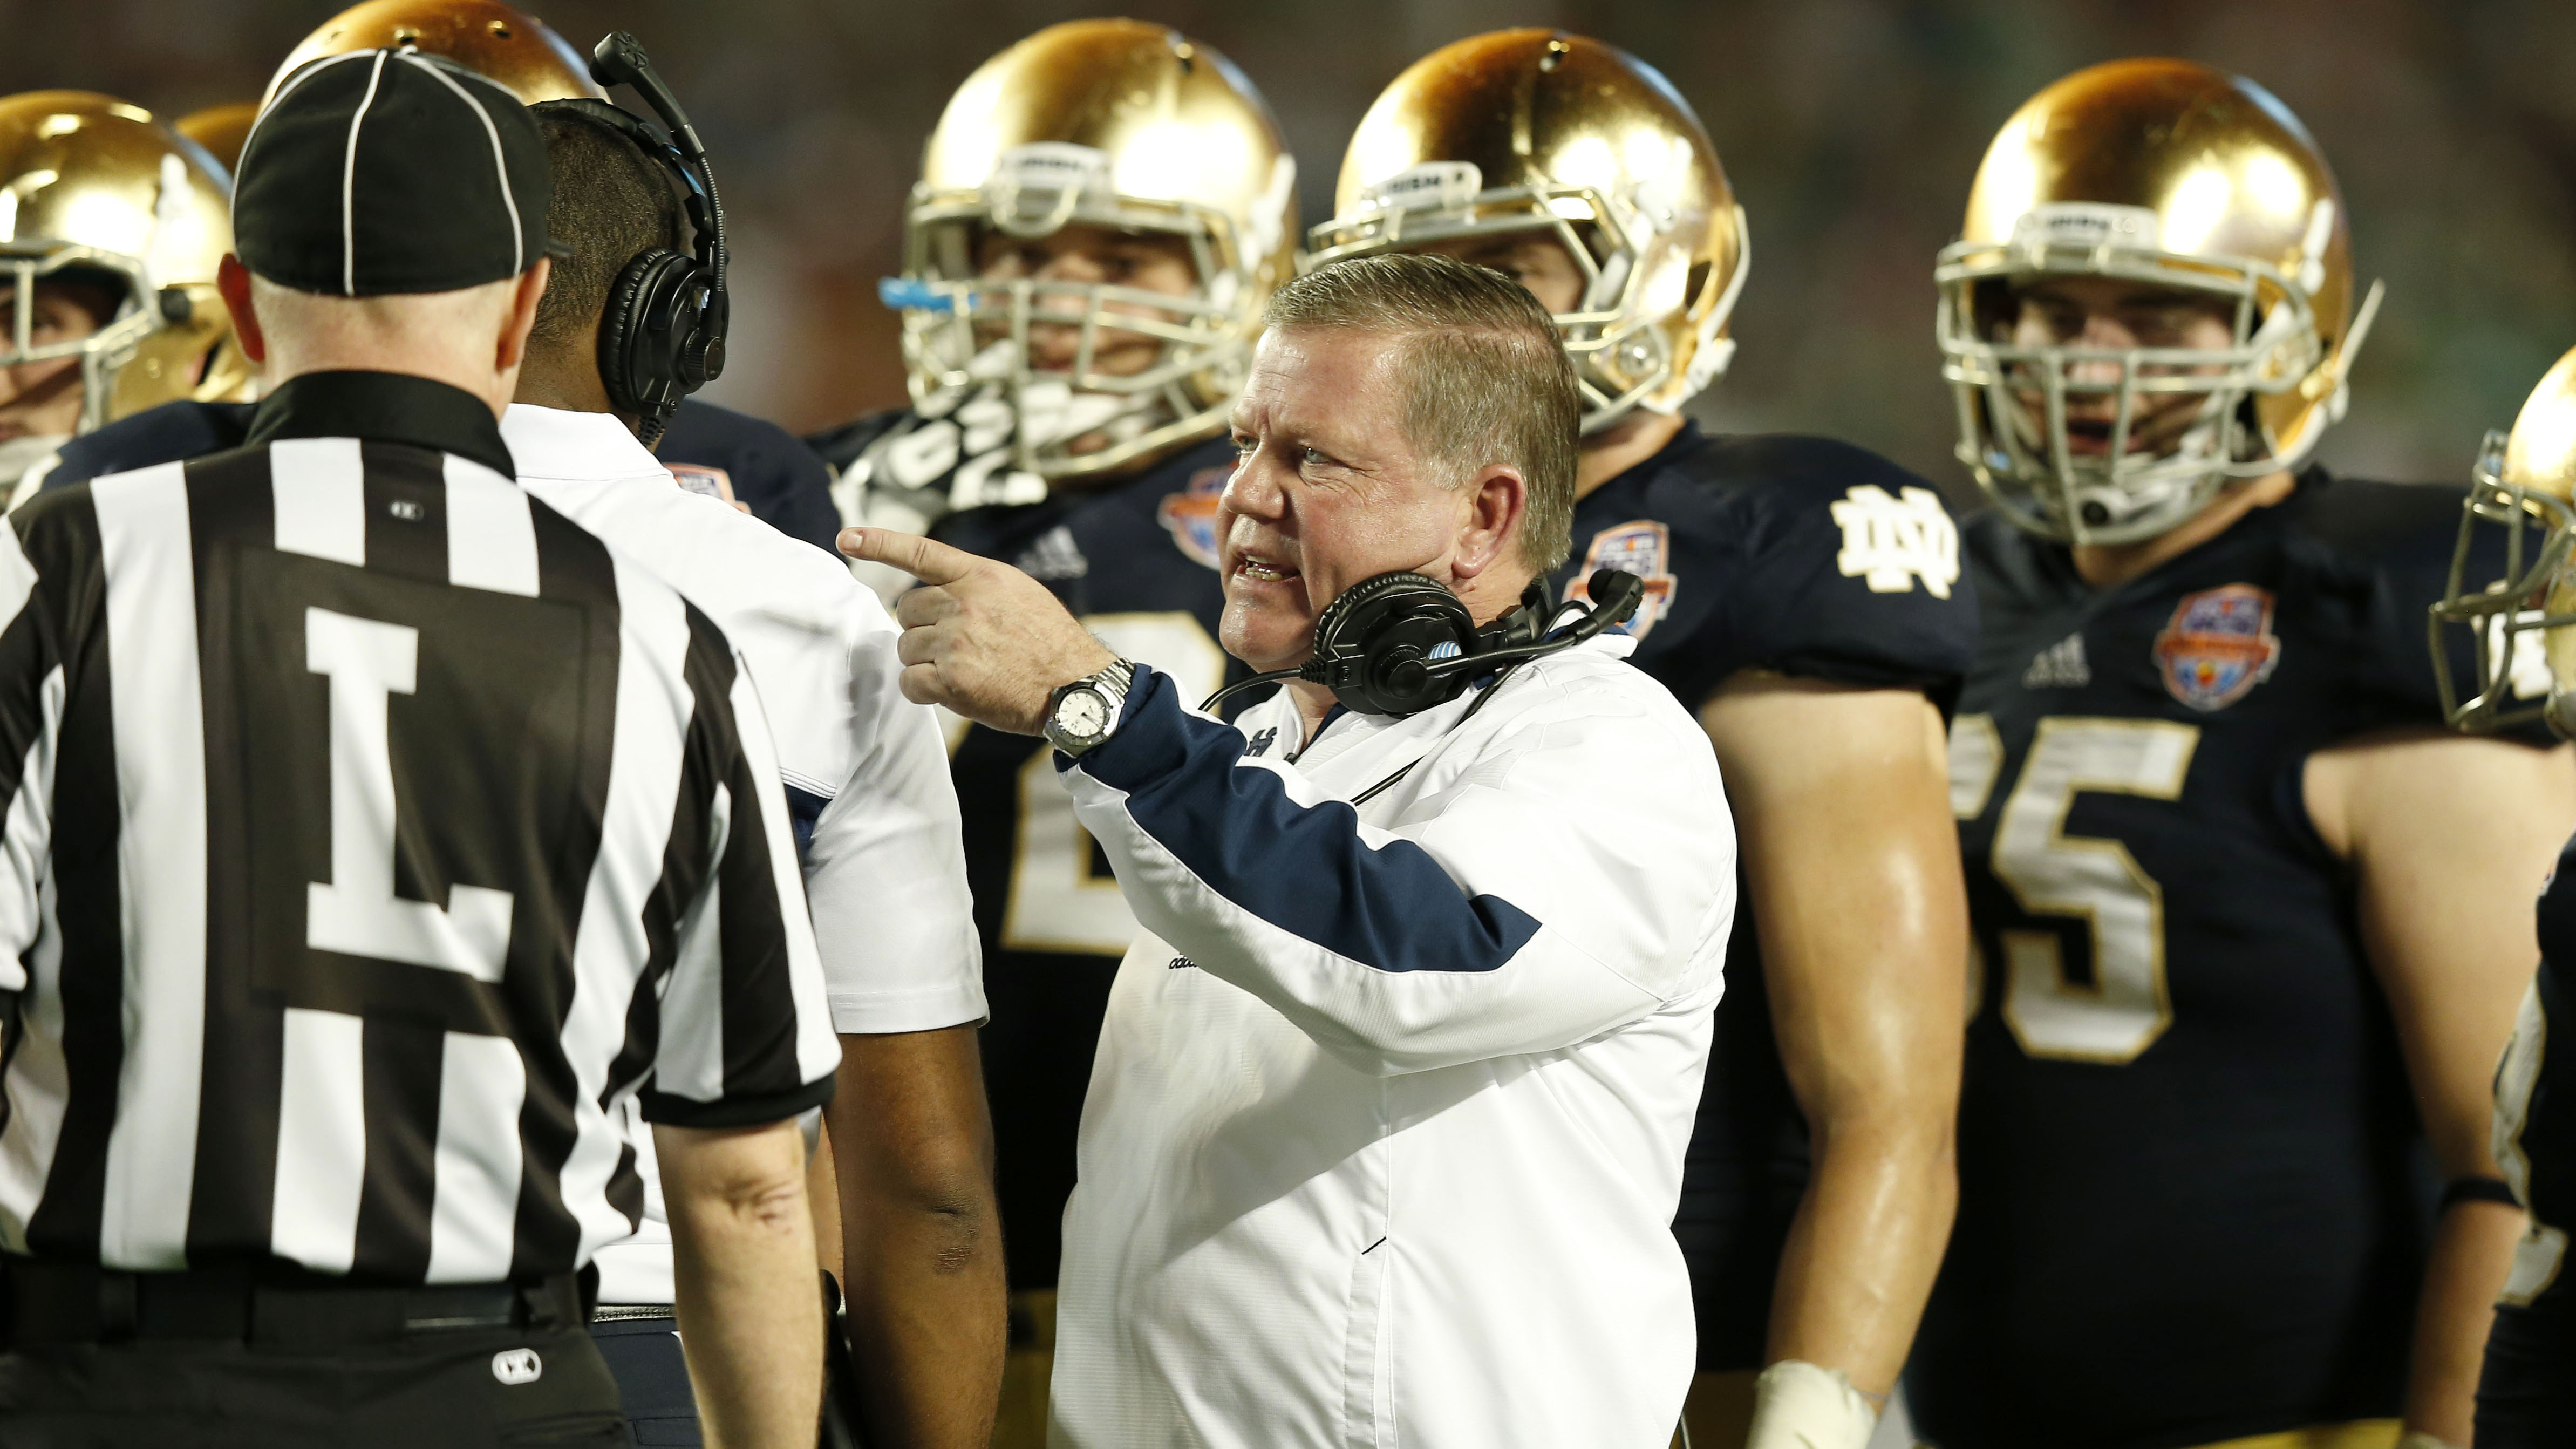 Notre dame football wins vacated by ncaa due to violations si com